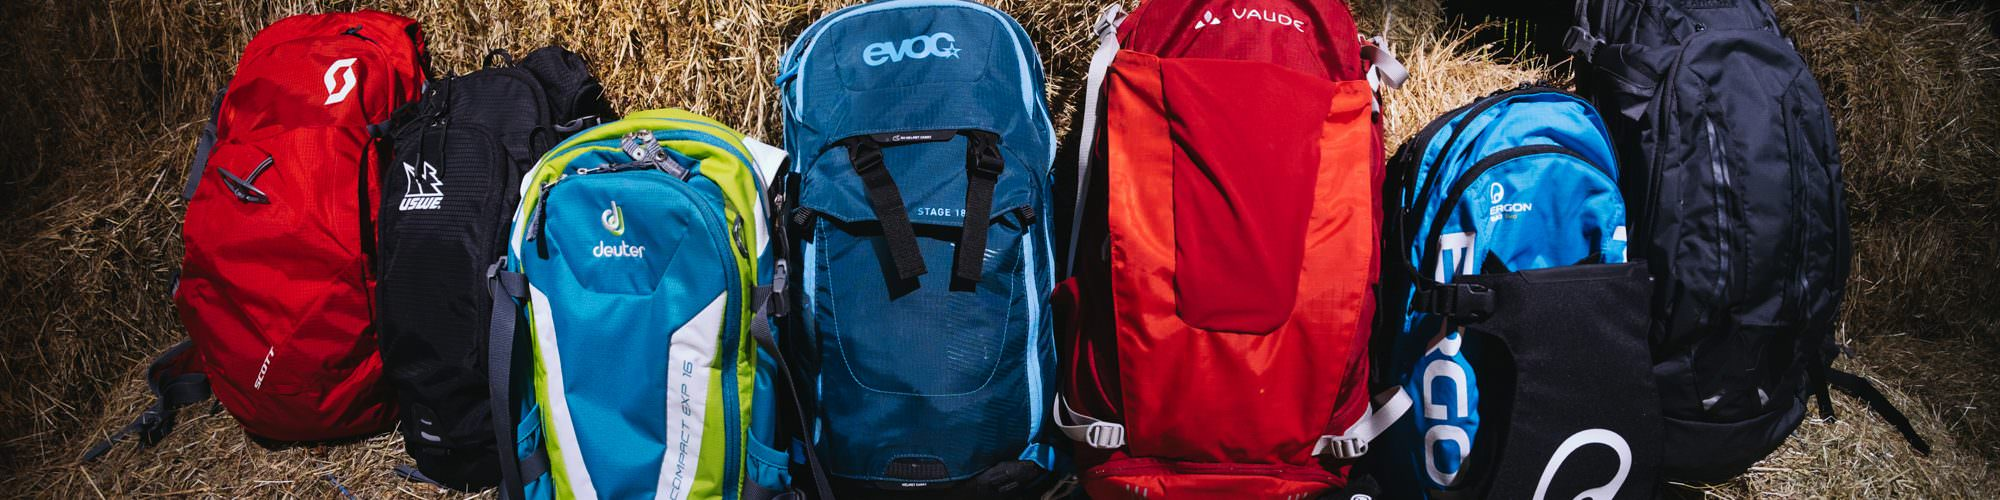 677ce3cad3 The best MTB daypack you can buy